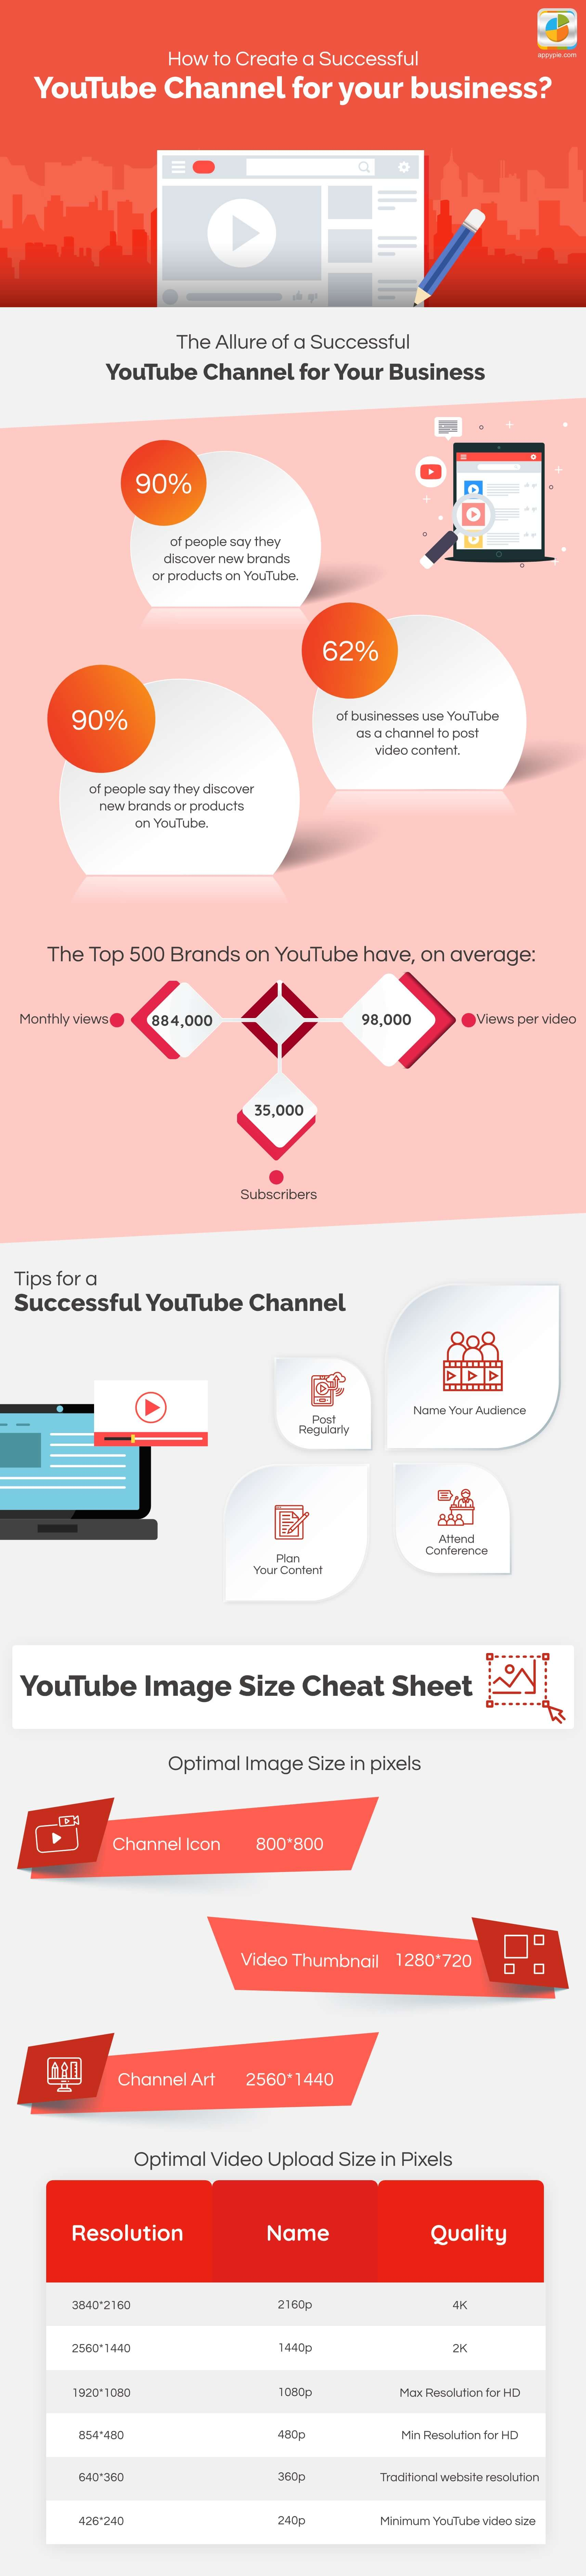 How to create a successfulYouTube channel for Your Business